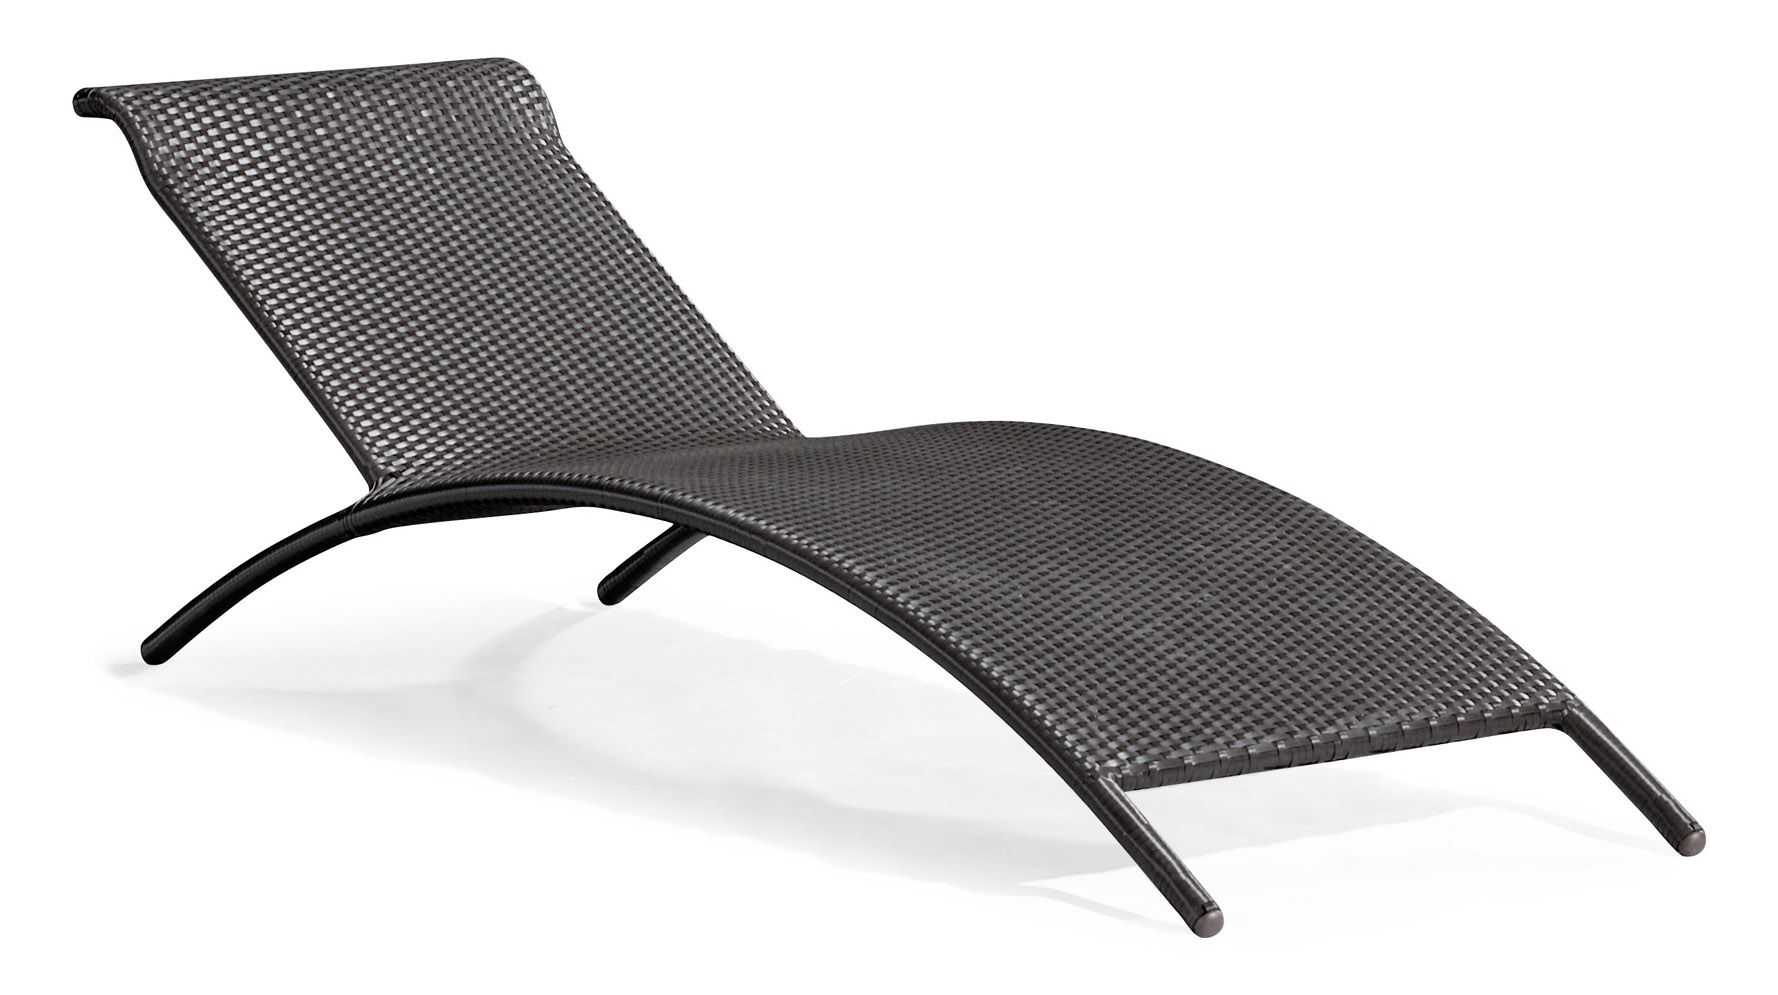 Vedema Lounge Chair Espresso Lounge Chair Outdoor Outdoor Lounge Furniture Outdoor Lounge